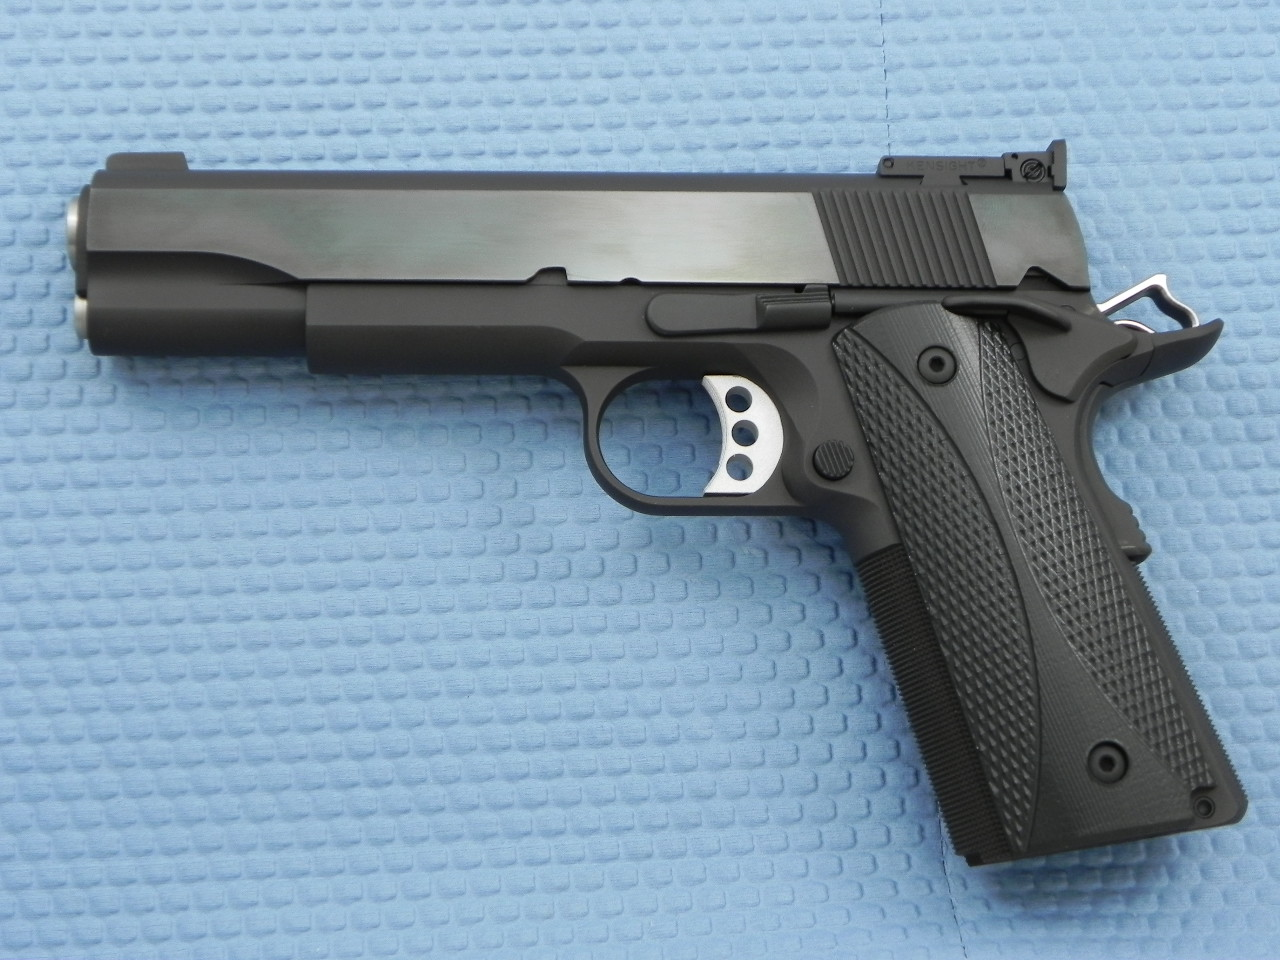 0086 - Cylinder and Slide Custom Gov't 1911 in 9 MM